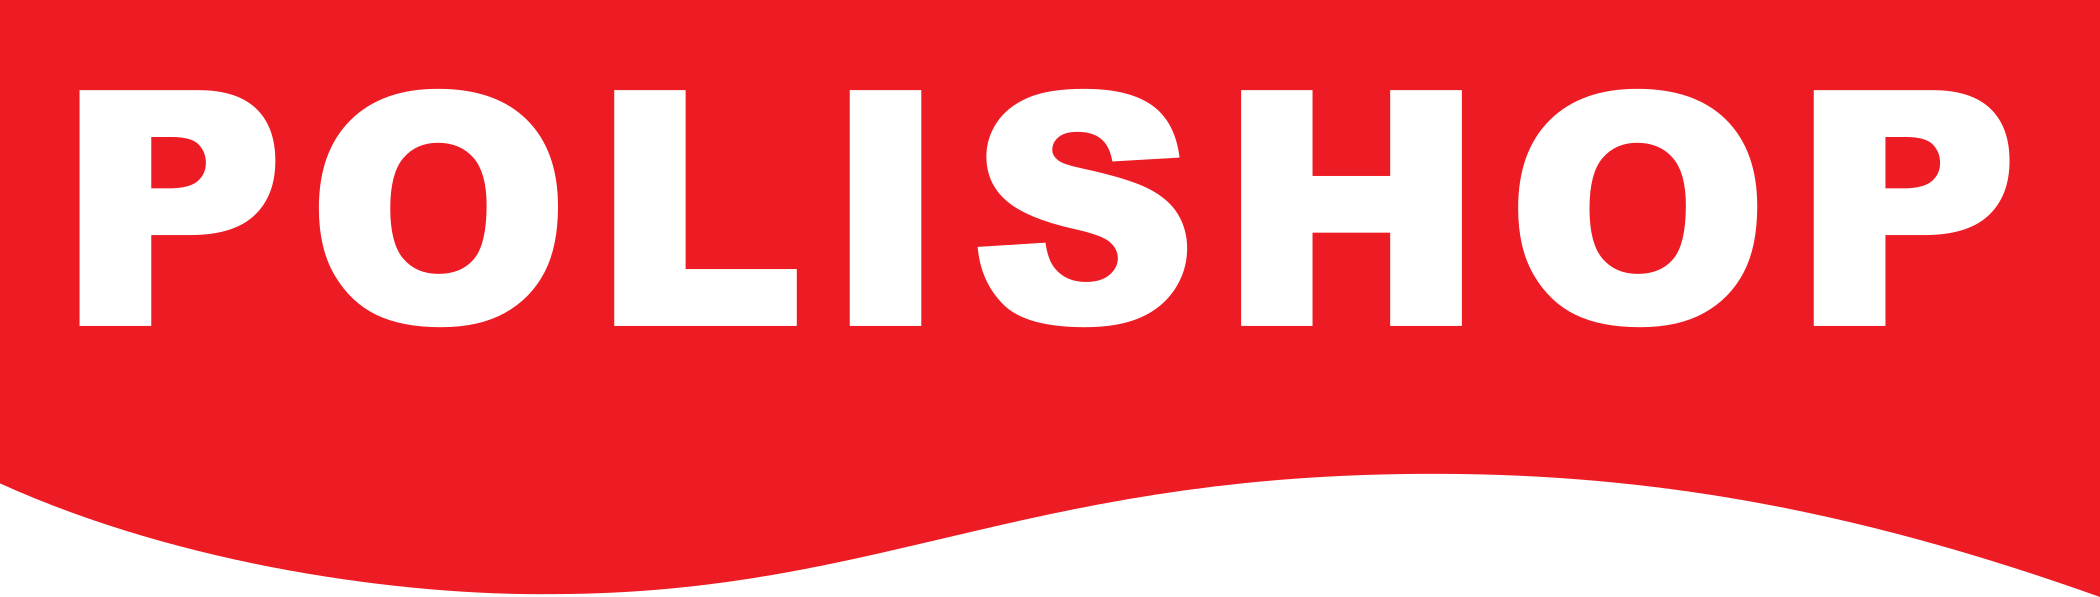 Polishop Logo.